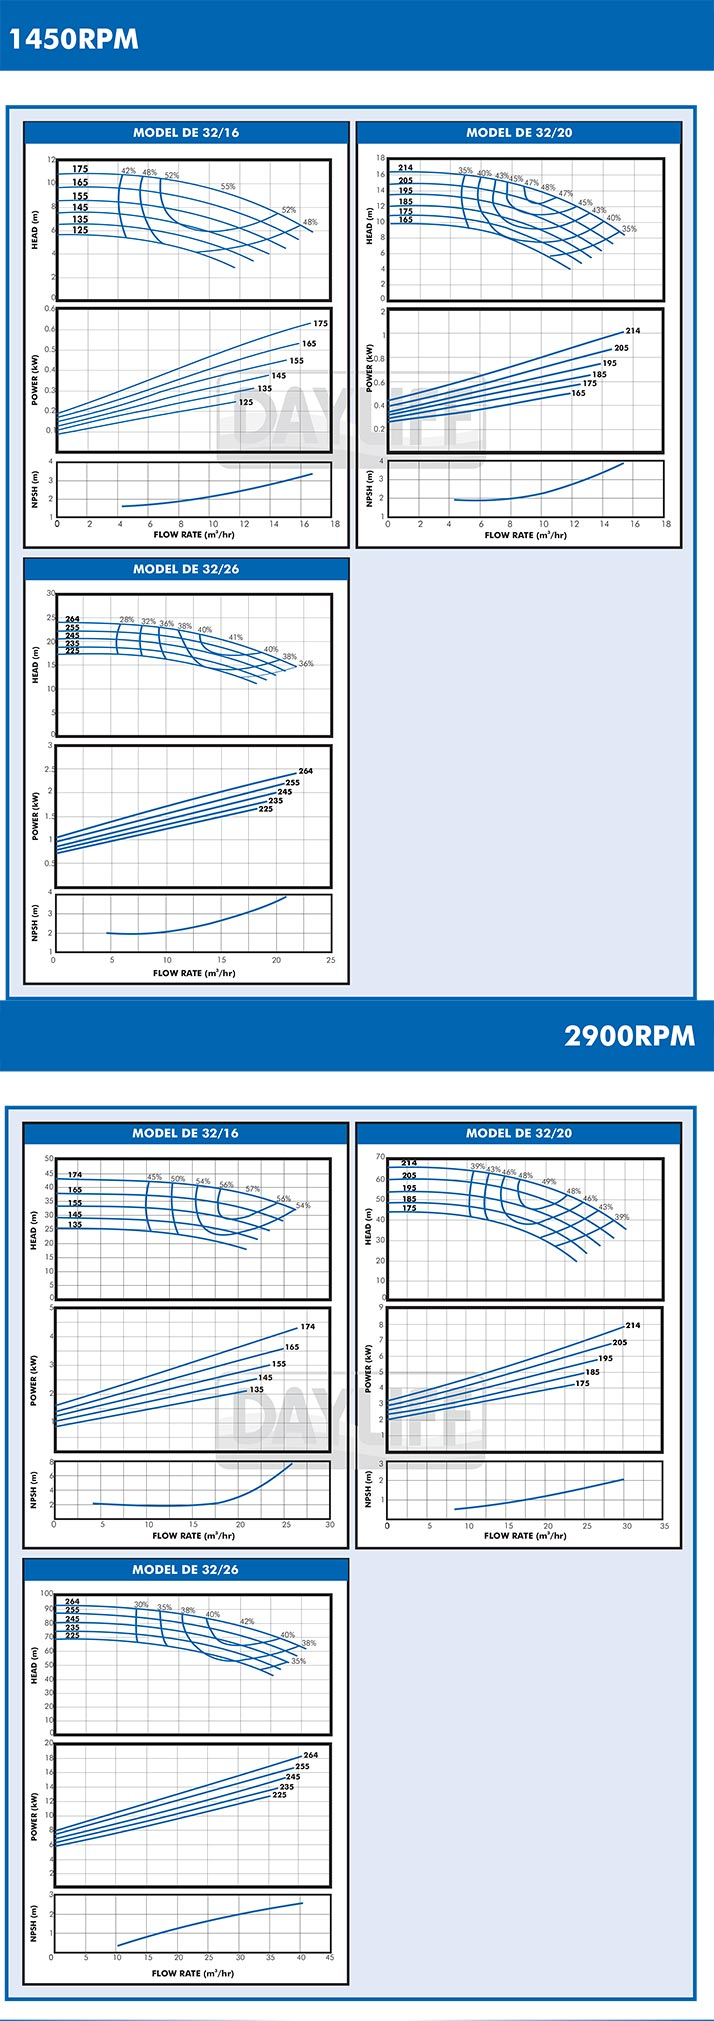 Contents additionally Fuse Chart Sizing together with Fan Belt Sizes together with Motor Sheave Calculator also V Belt Pulley Size Chart. on electric motor belt sizing